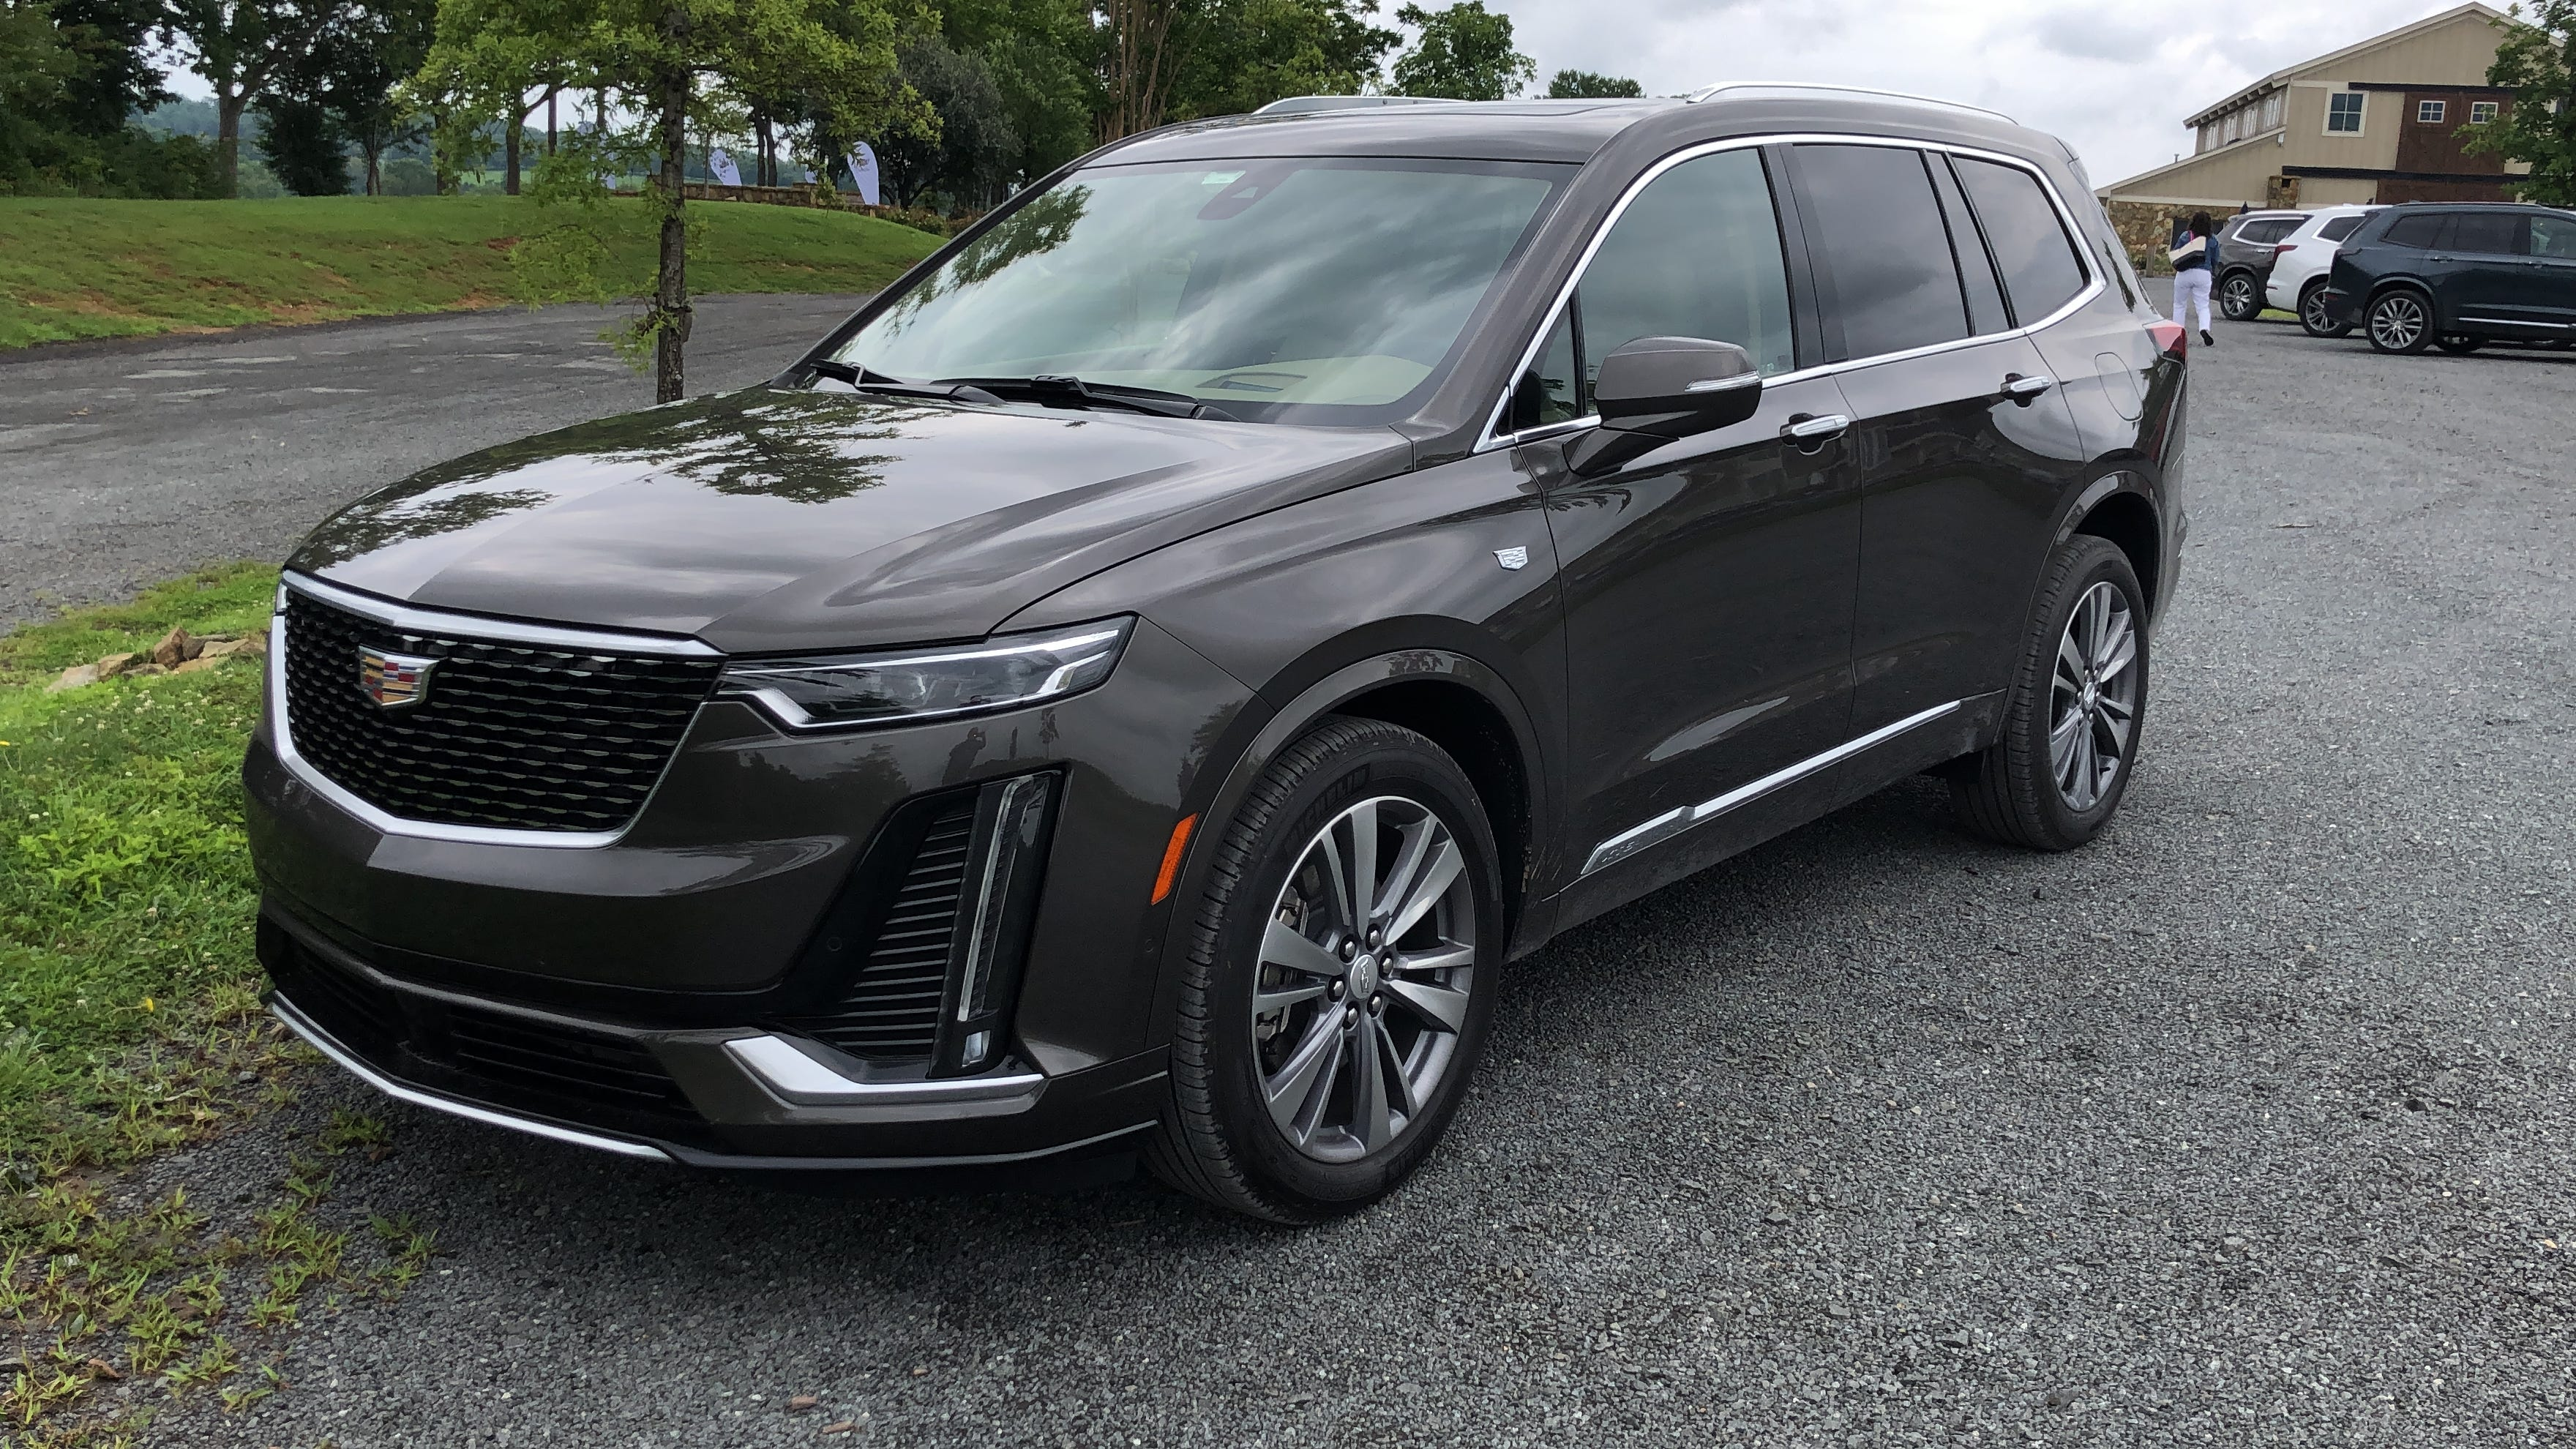 97 Gallery of 2020 Cadillac Suv Lineup Performance and New Engine with 2020 Cadillac Suv Lineup